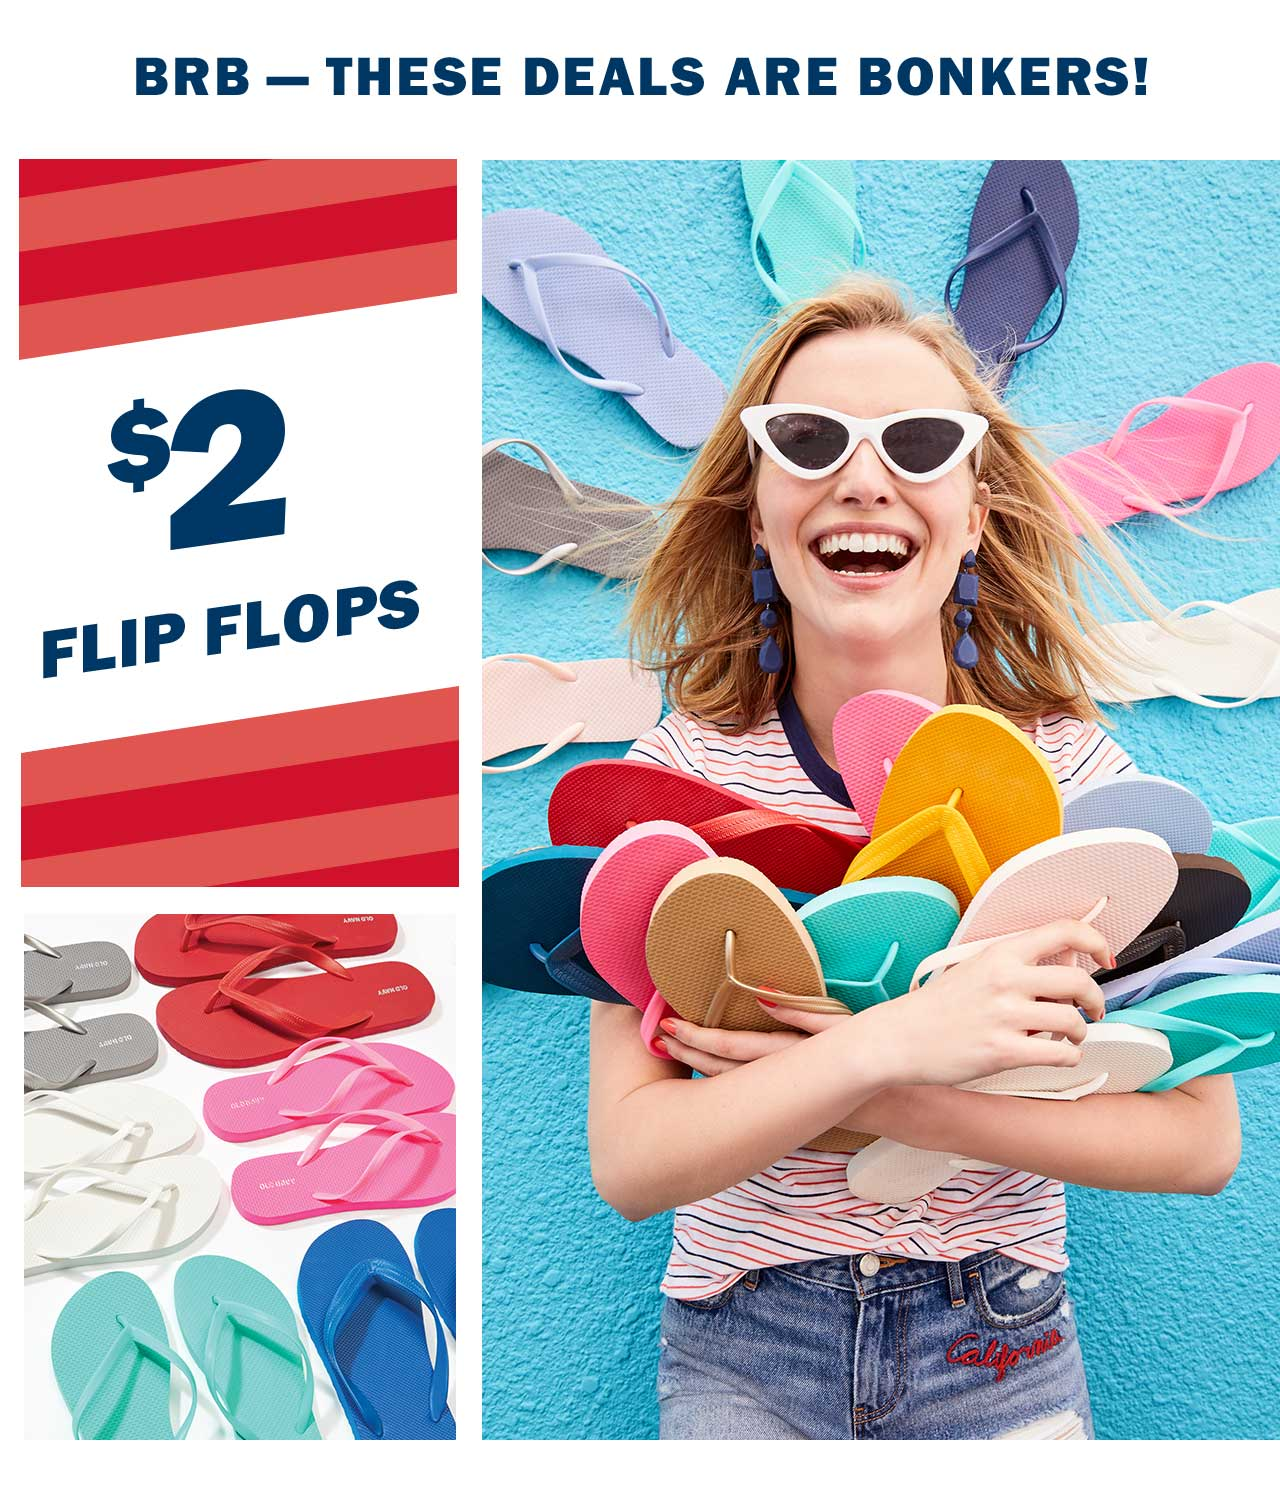 BRB  THESE DEALS ARE BONKERS! | $2 FLIP FLOPS